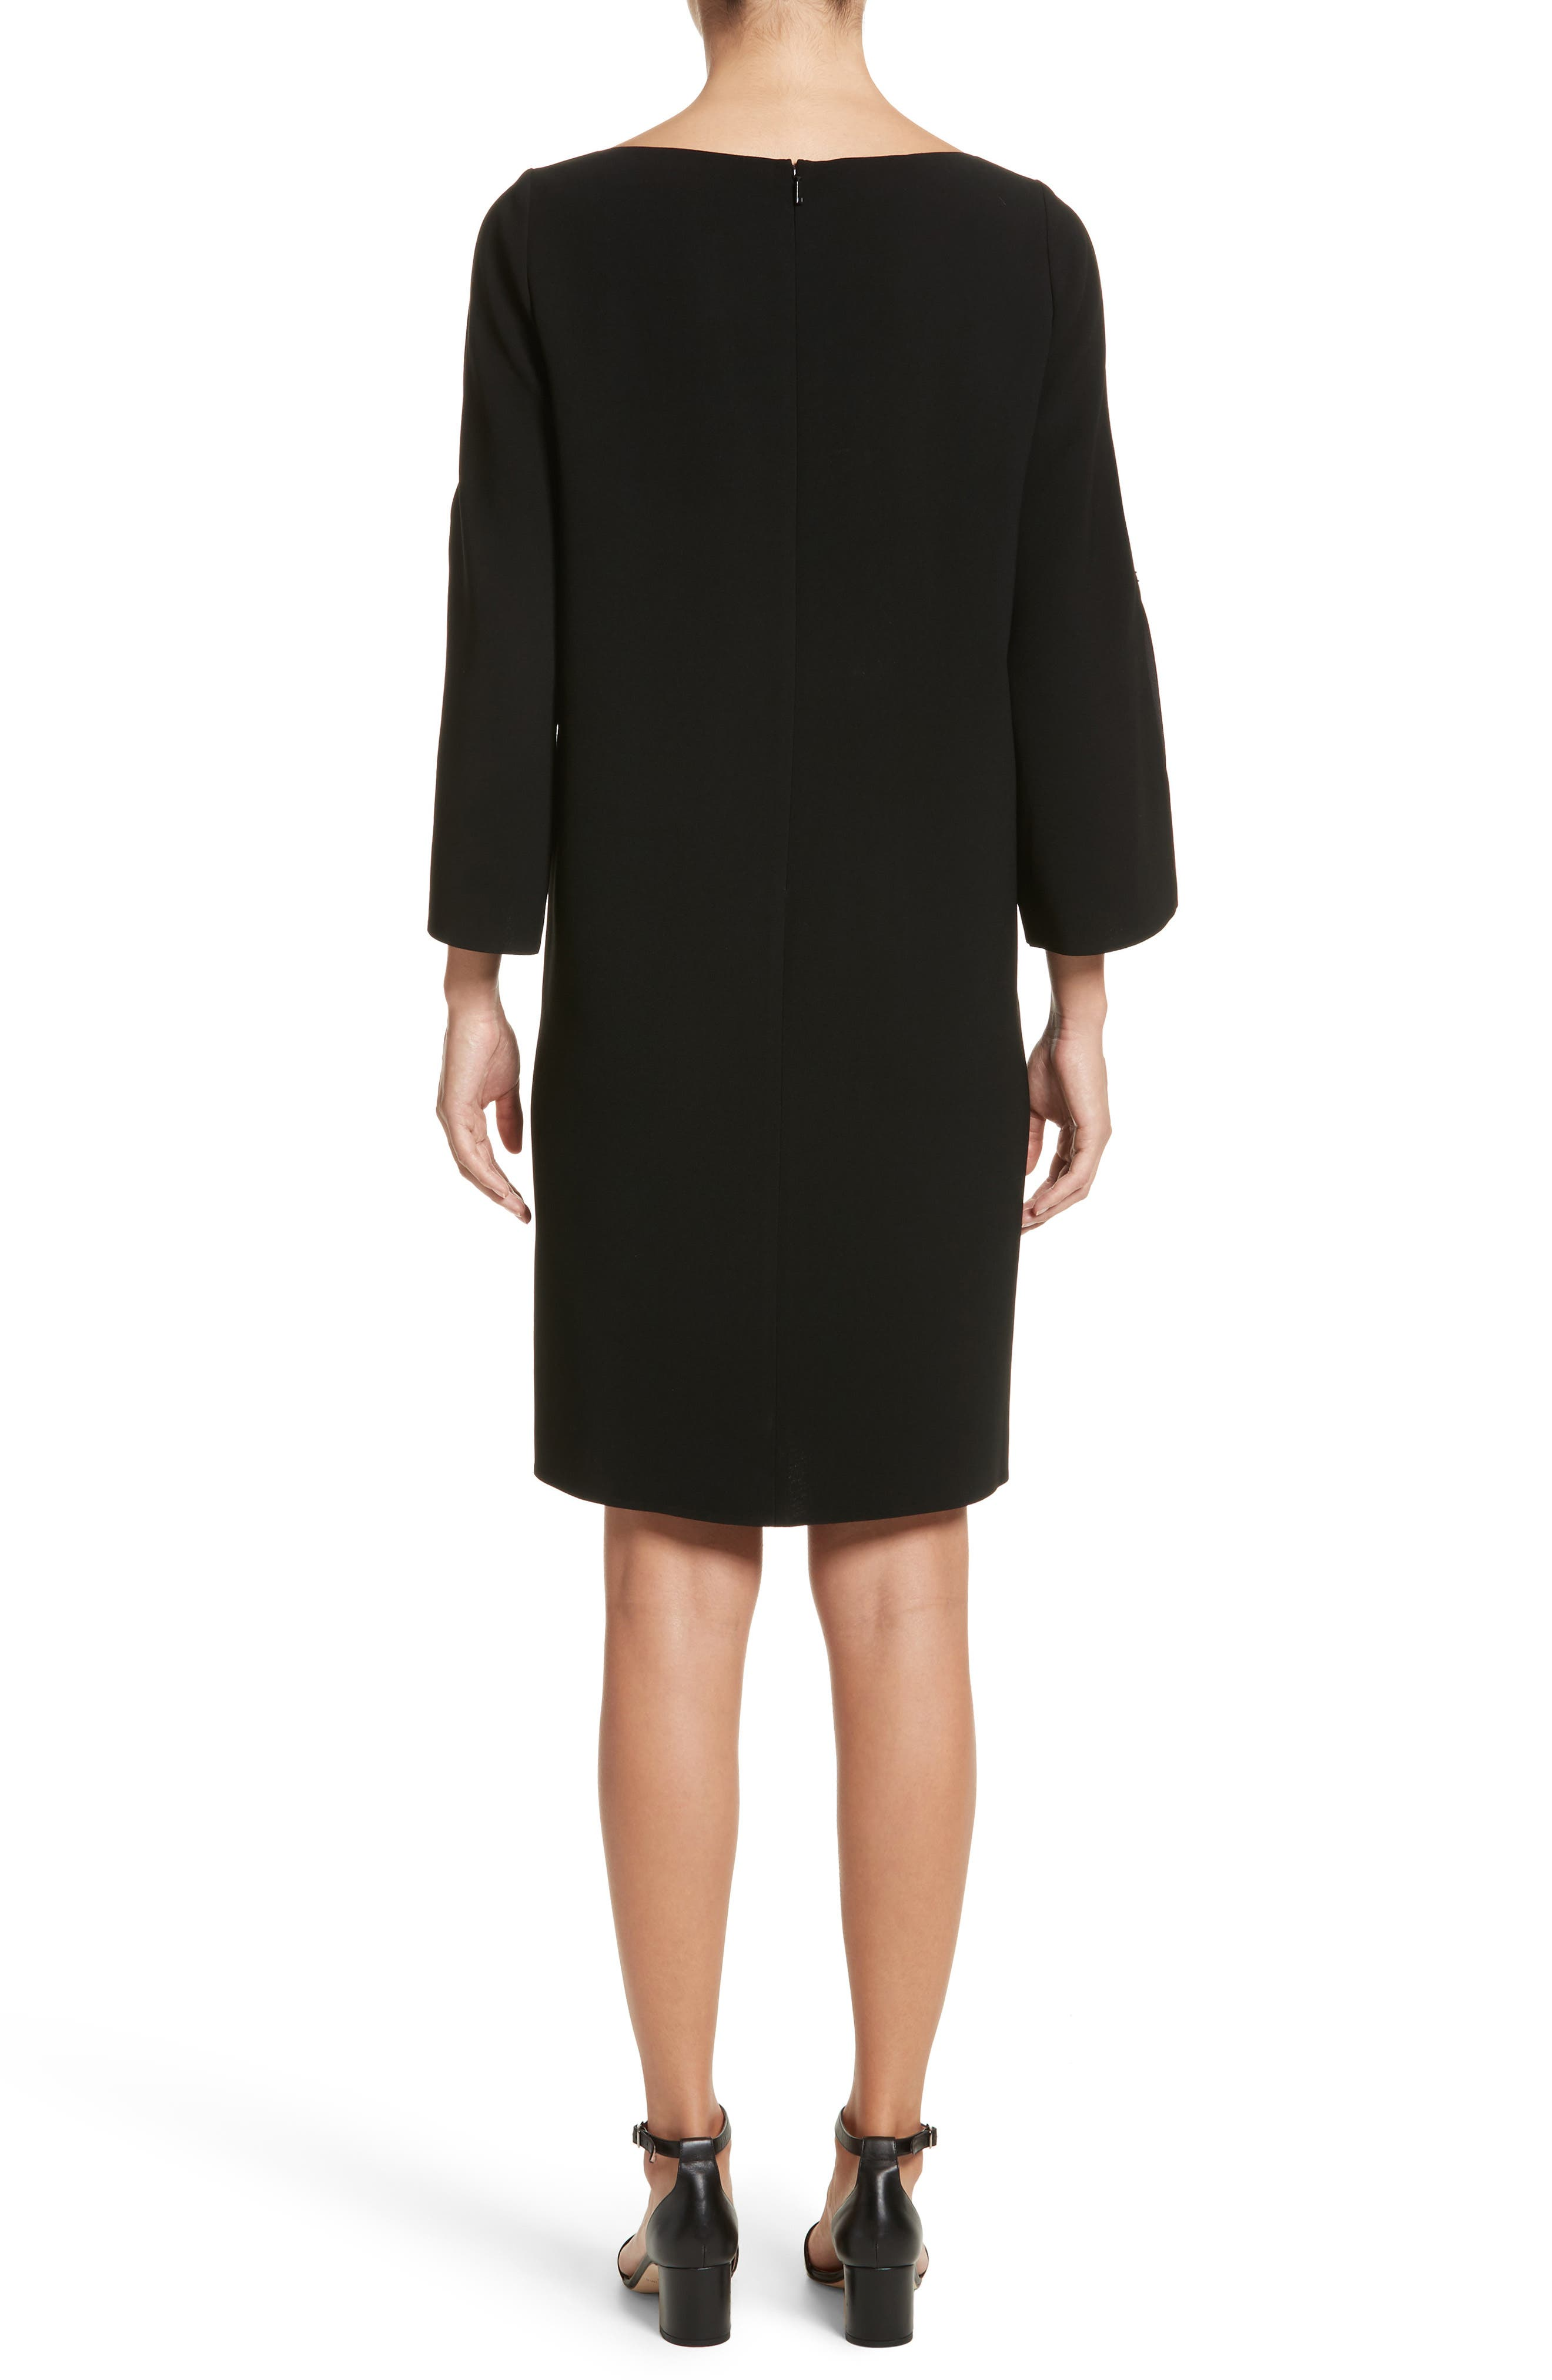 LAFAYETTE 148 NEW YORK,                             Candace Finesse Crepe Shift Dress,                             Alternate thumbnail 2, color,                             001